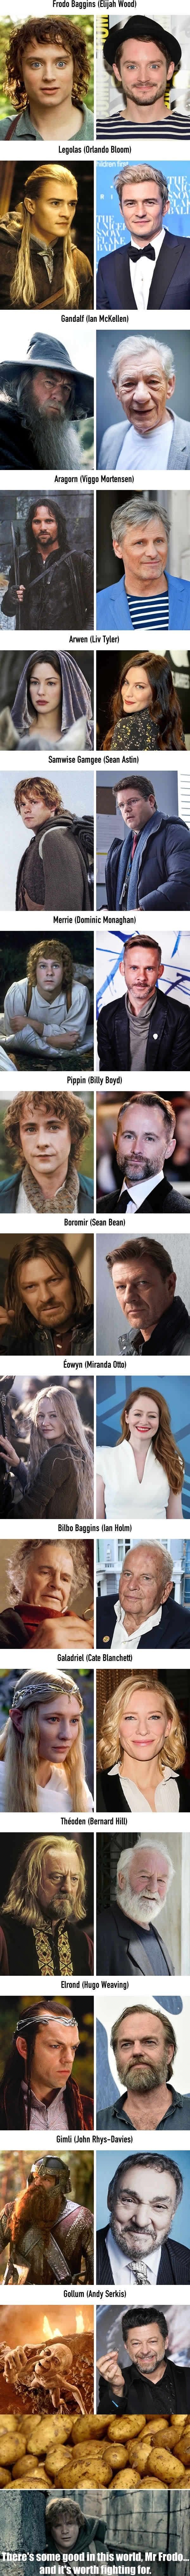 The Lord of the Rings 15 Years Later, they haven't even aged :0 except jean bean, but he looks more epic this way